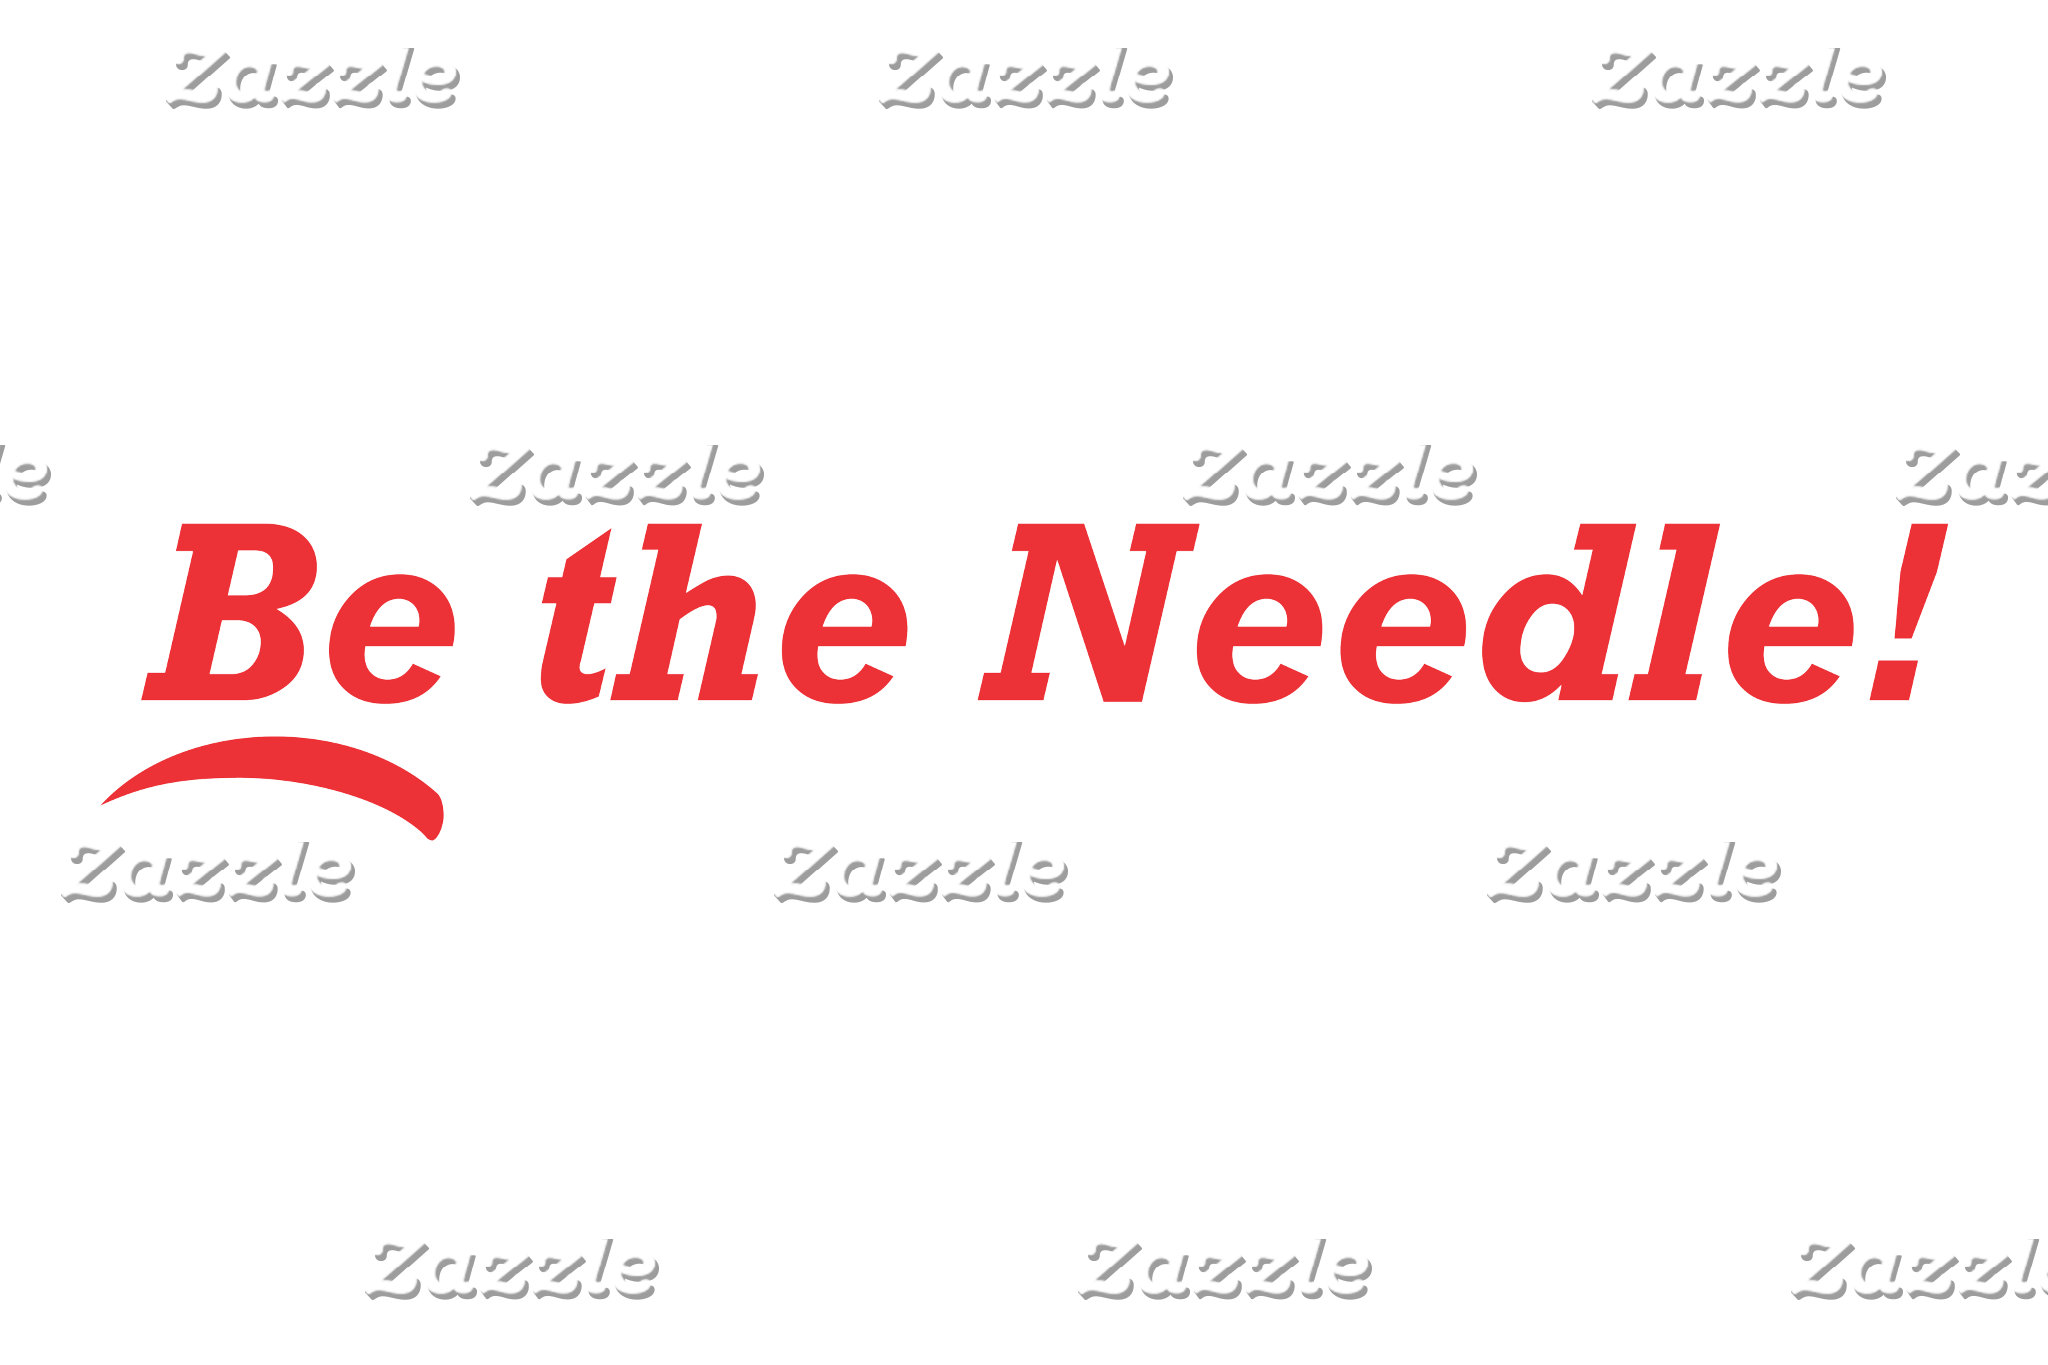 Be the Needle!